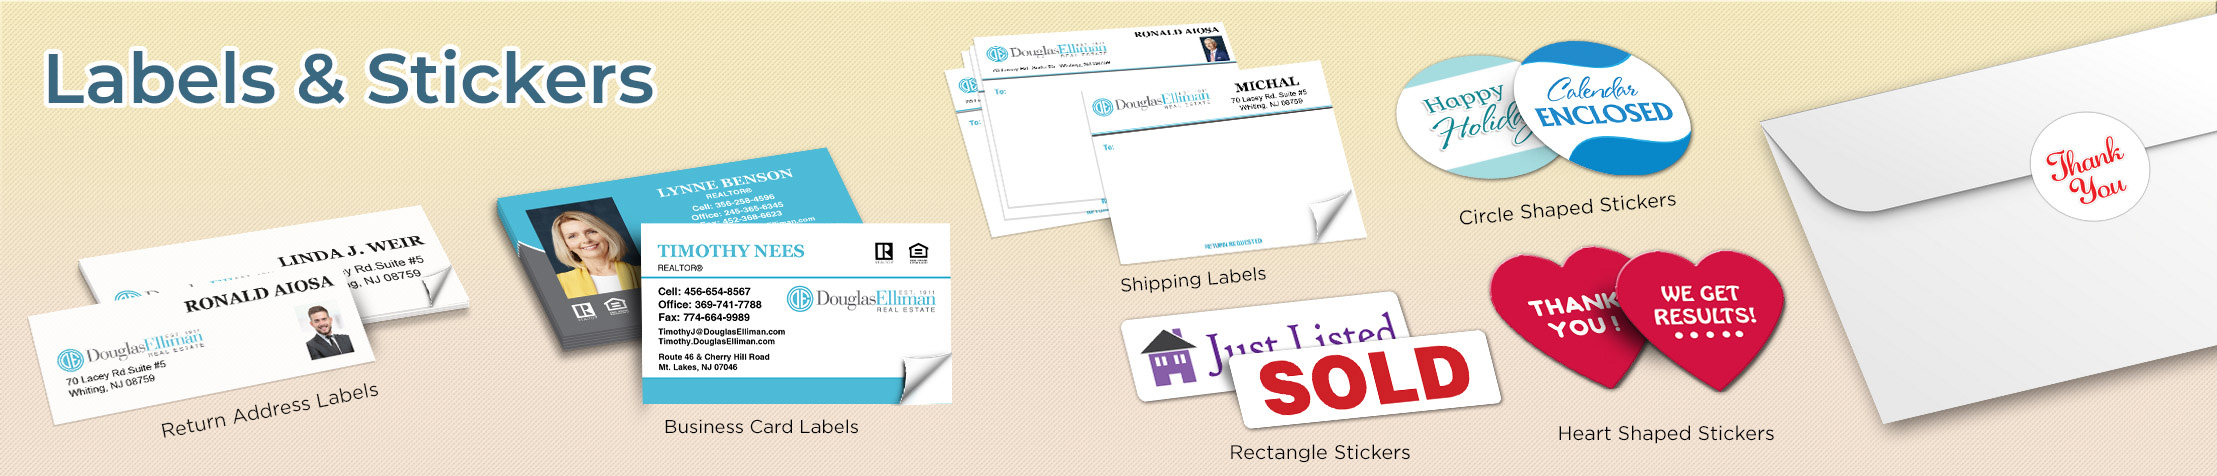 Douglas Elliman Real Estate Labels and Stickers - Douglas Elliman Real Estate business card labels, return address labels, shipping labels, and assorted stickers | BestPrintBuy.com